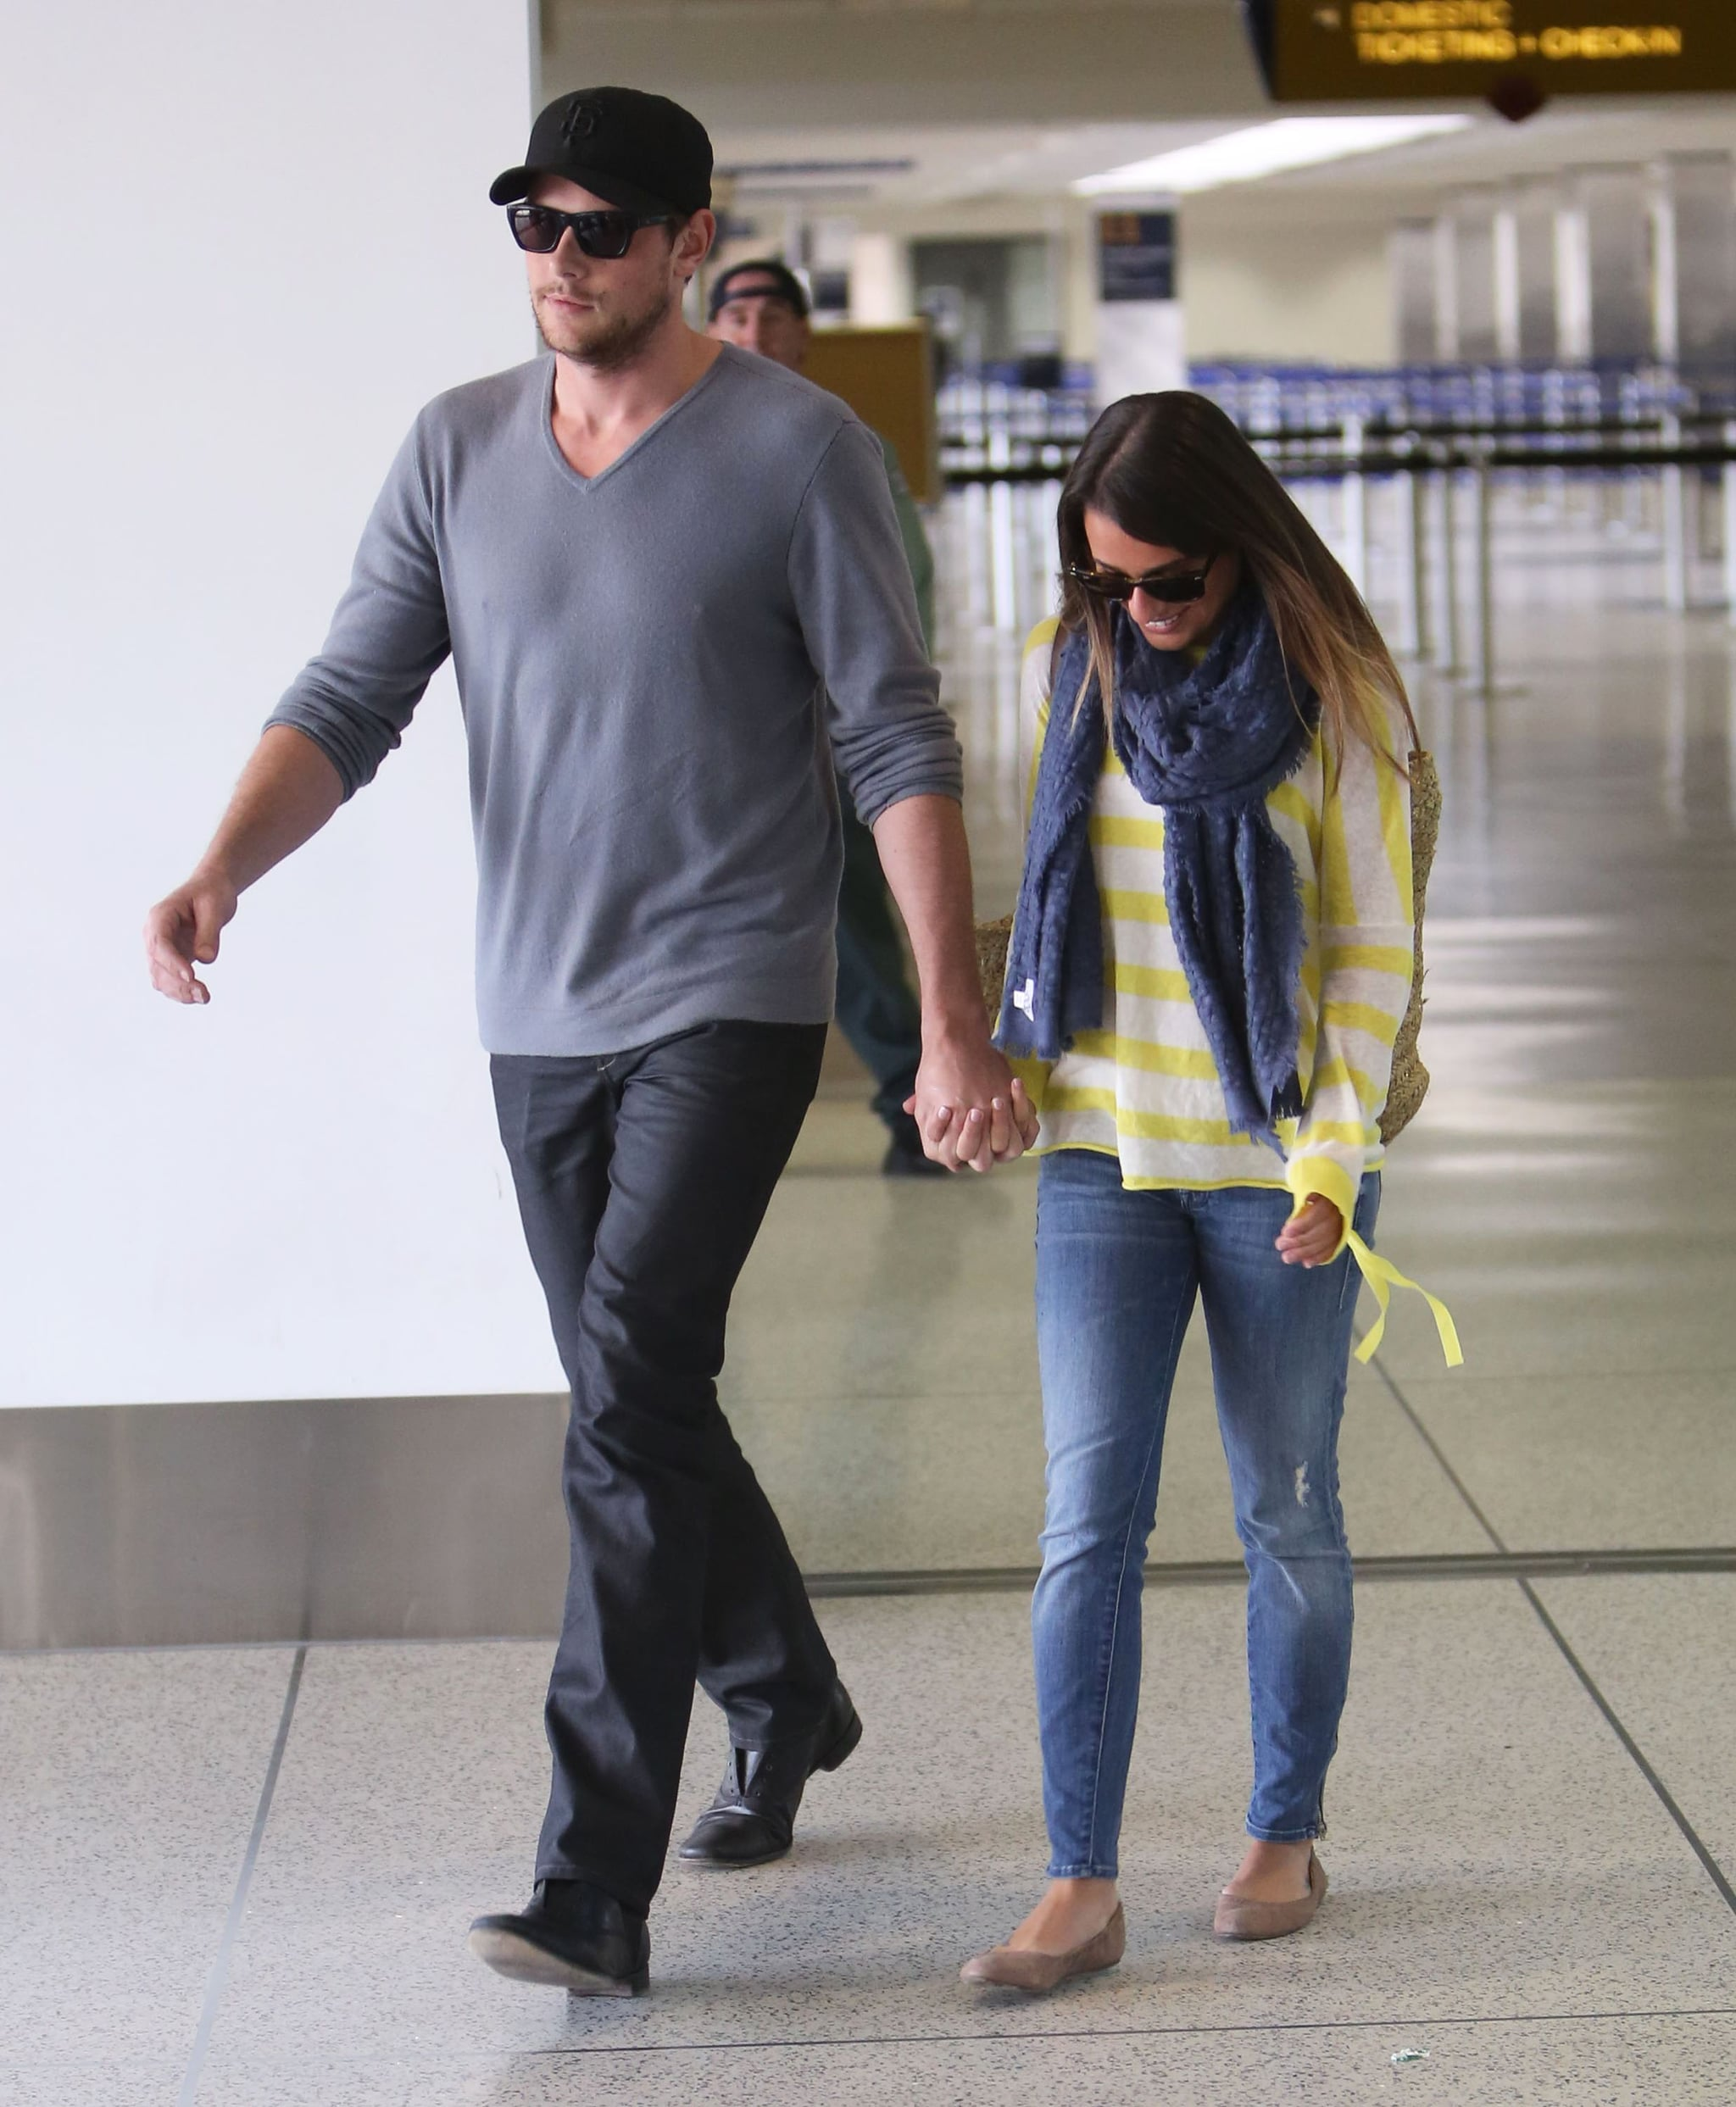 Lea Michele and Cory Monteith made their way through LAX together.